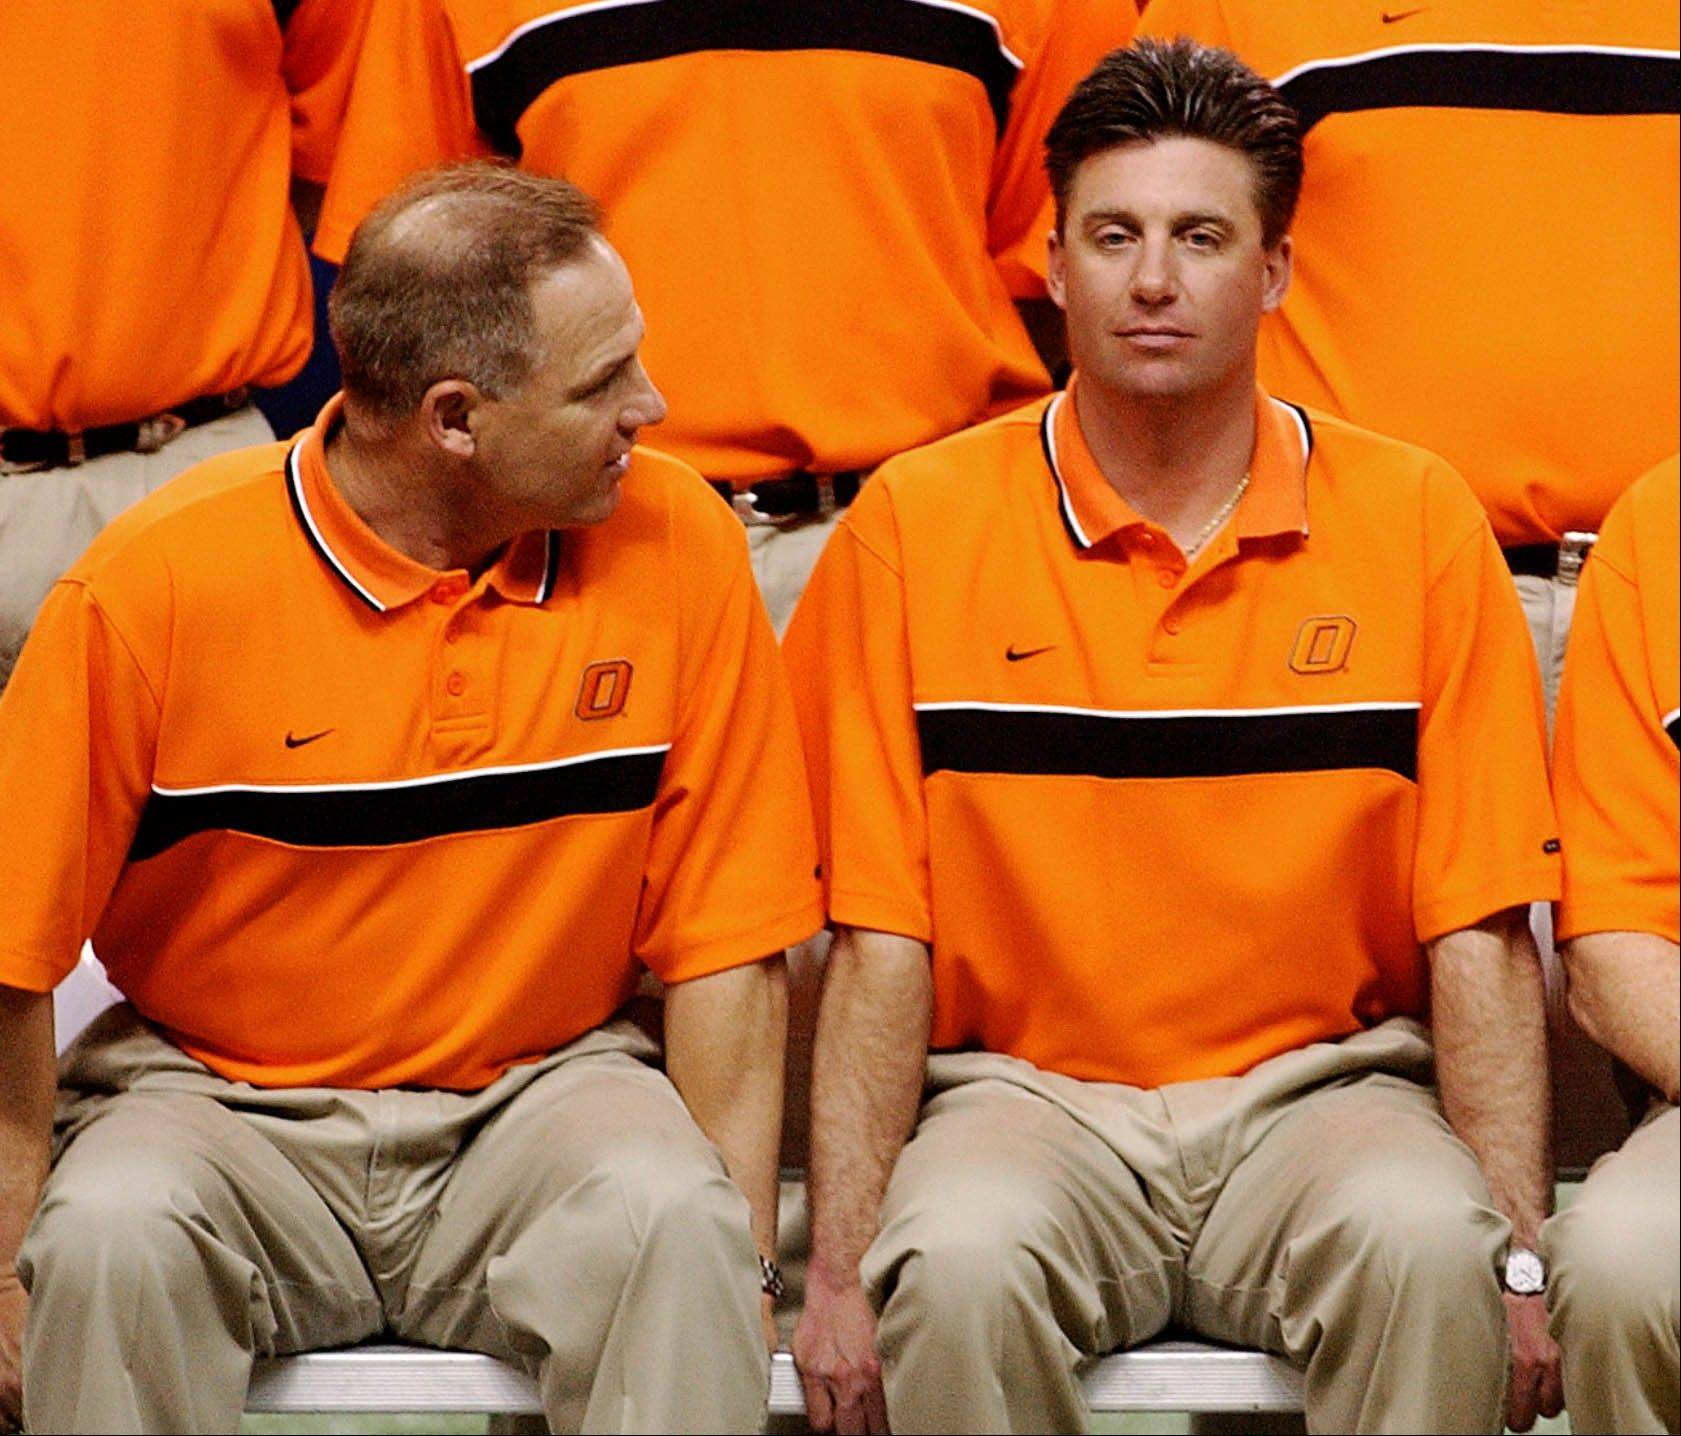 According to a Sports Illustrated report, players under former Oklahoma State head coach Les Miles, left, and current coach Mike Gundy accepted tens of thousands of dollars from boosters and staff members.